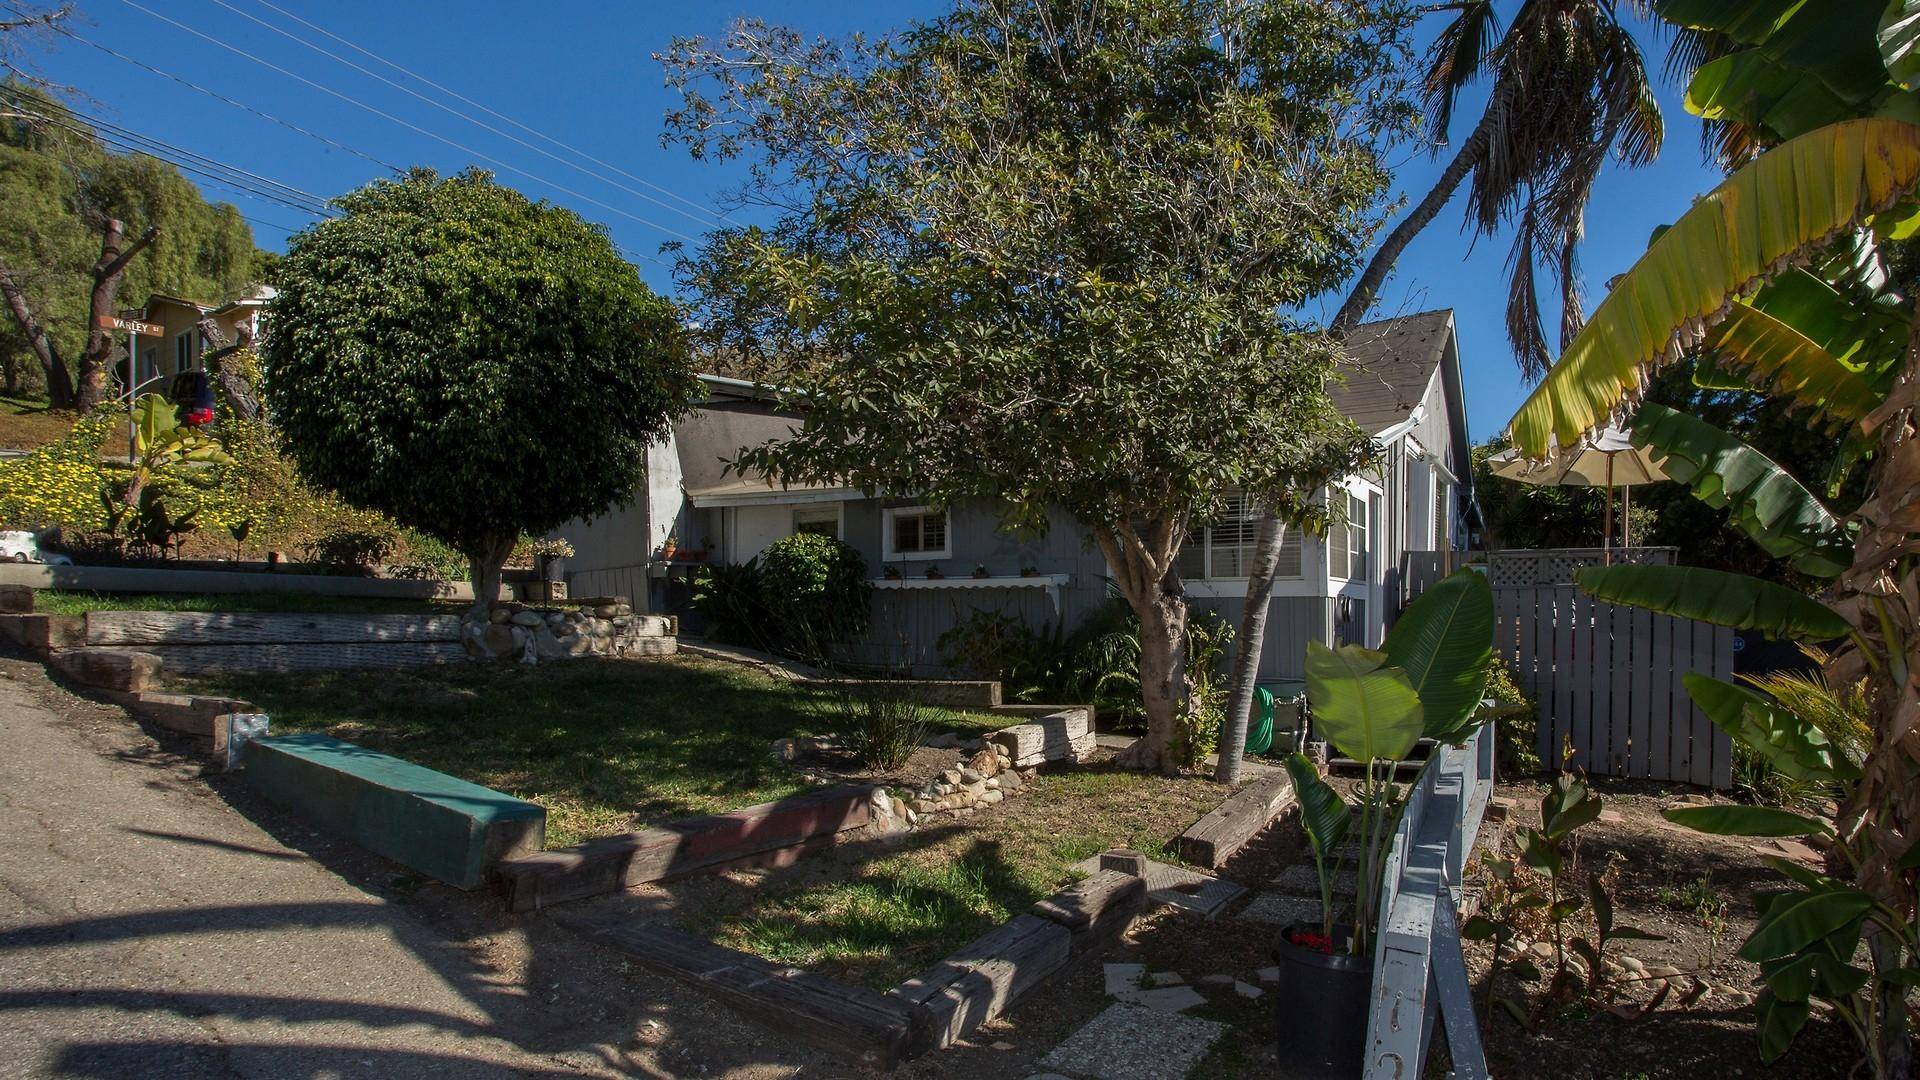 Property photo for 120 Hollister St Summerland, California 93067 - 14-1612